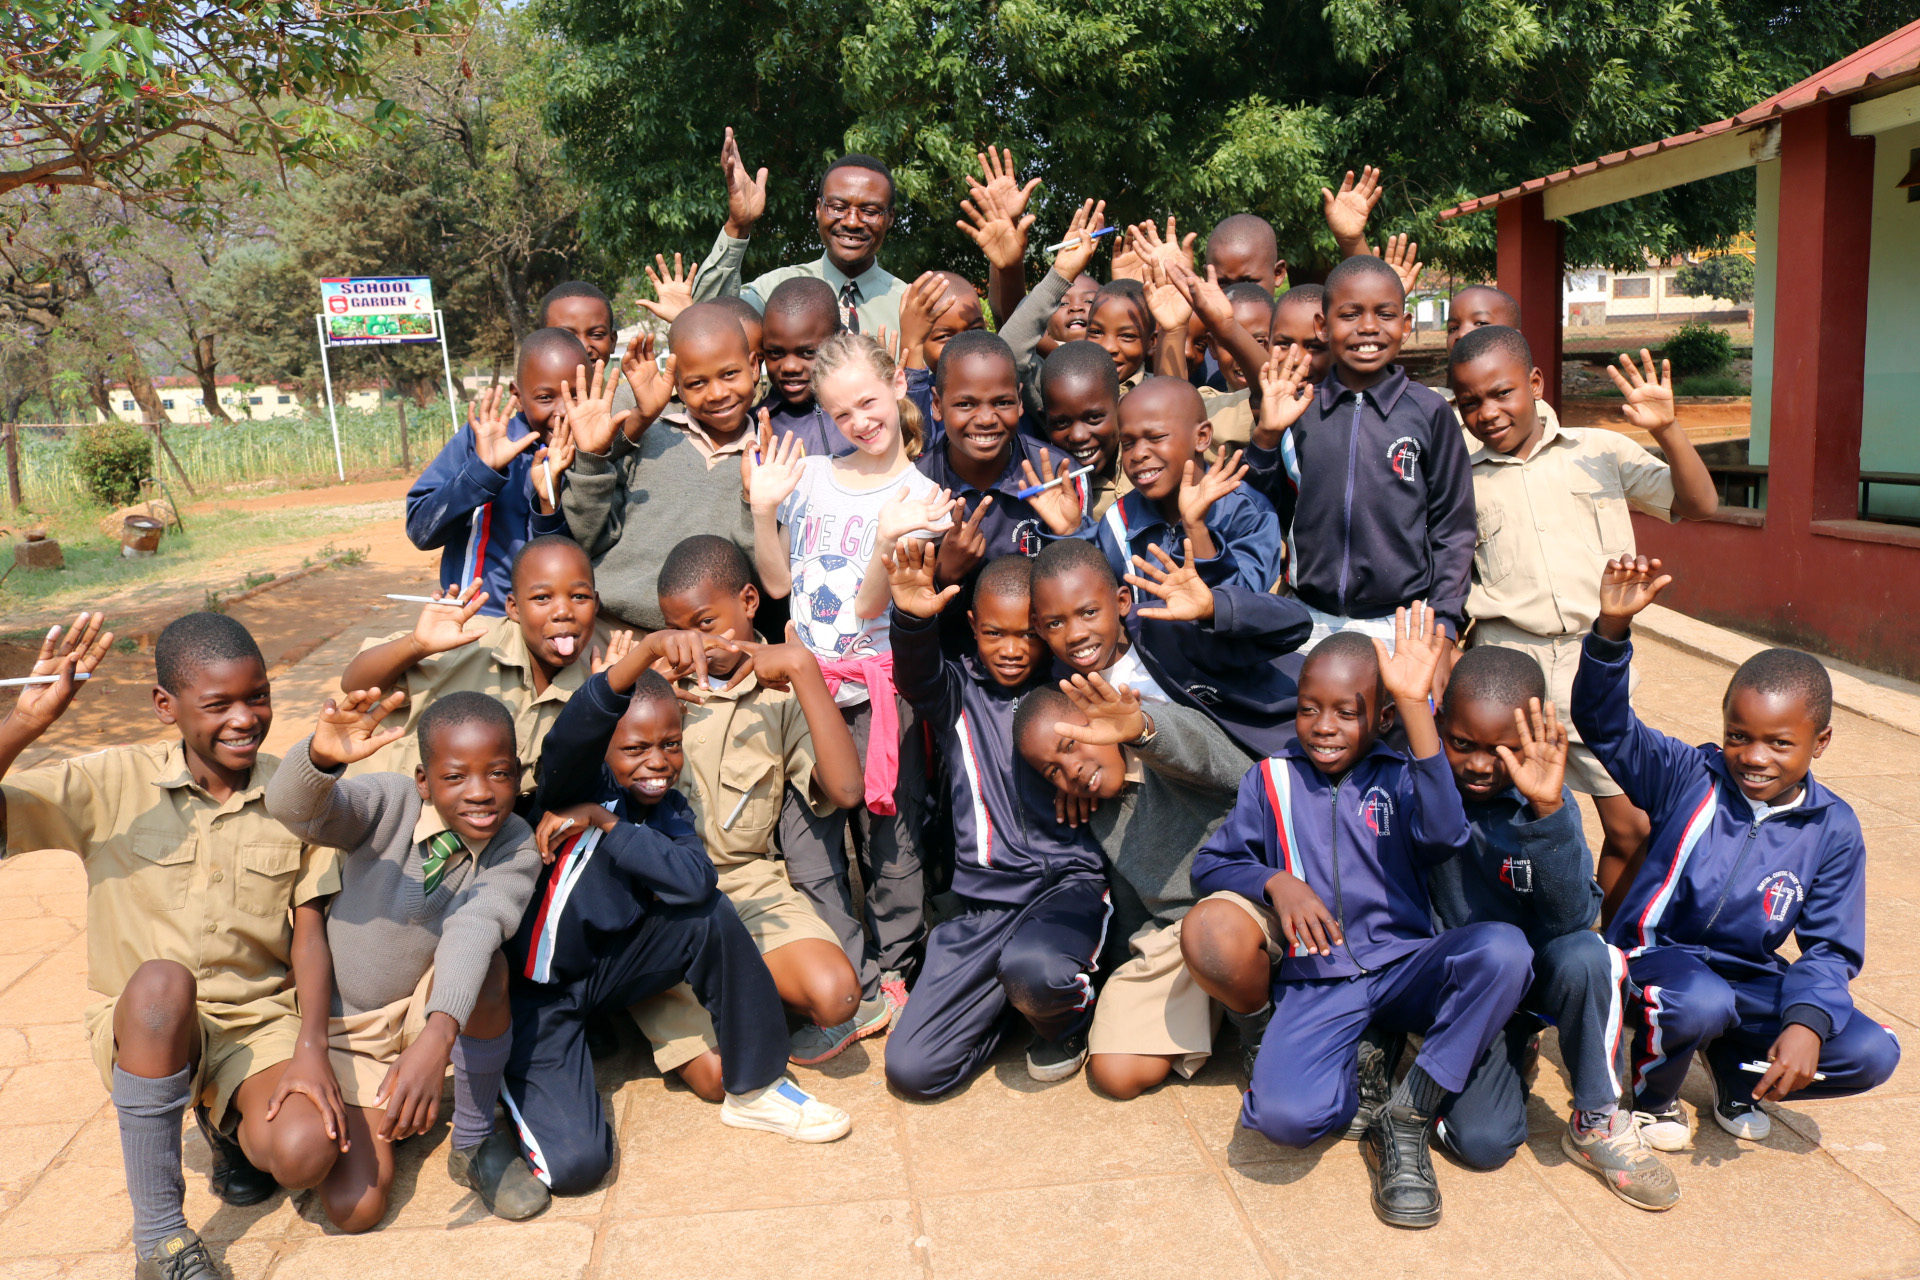 Mikayla Jaissle (center, wearing white soccer shirt) poses with teacher Nicholas Chidzikwe and classmates at Hartzell Primary School. Photo by Eveline Chikwanah.